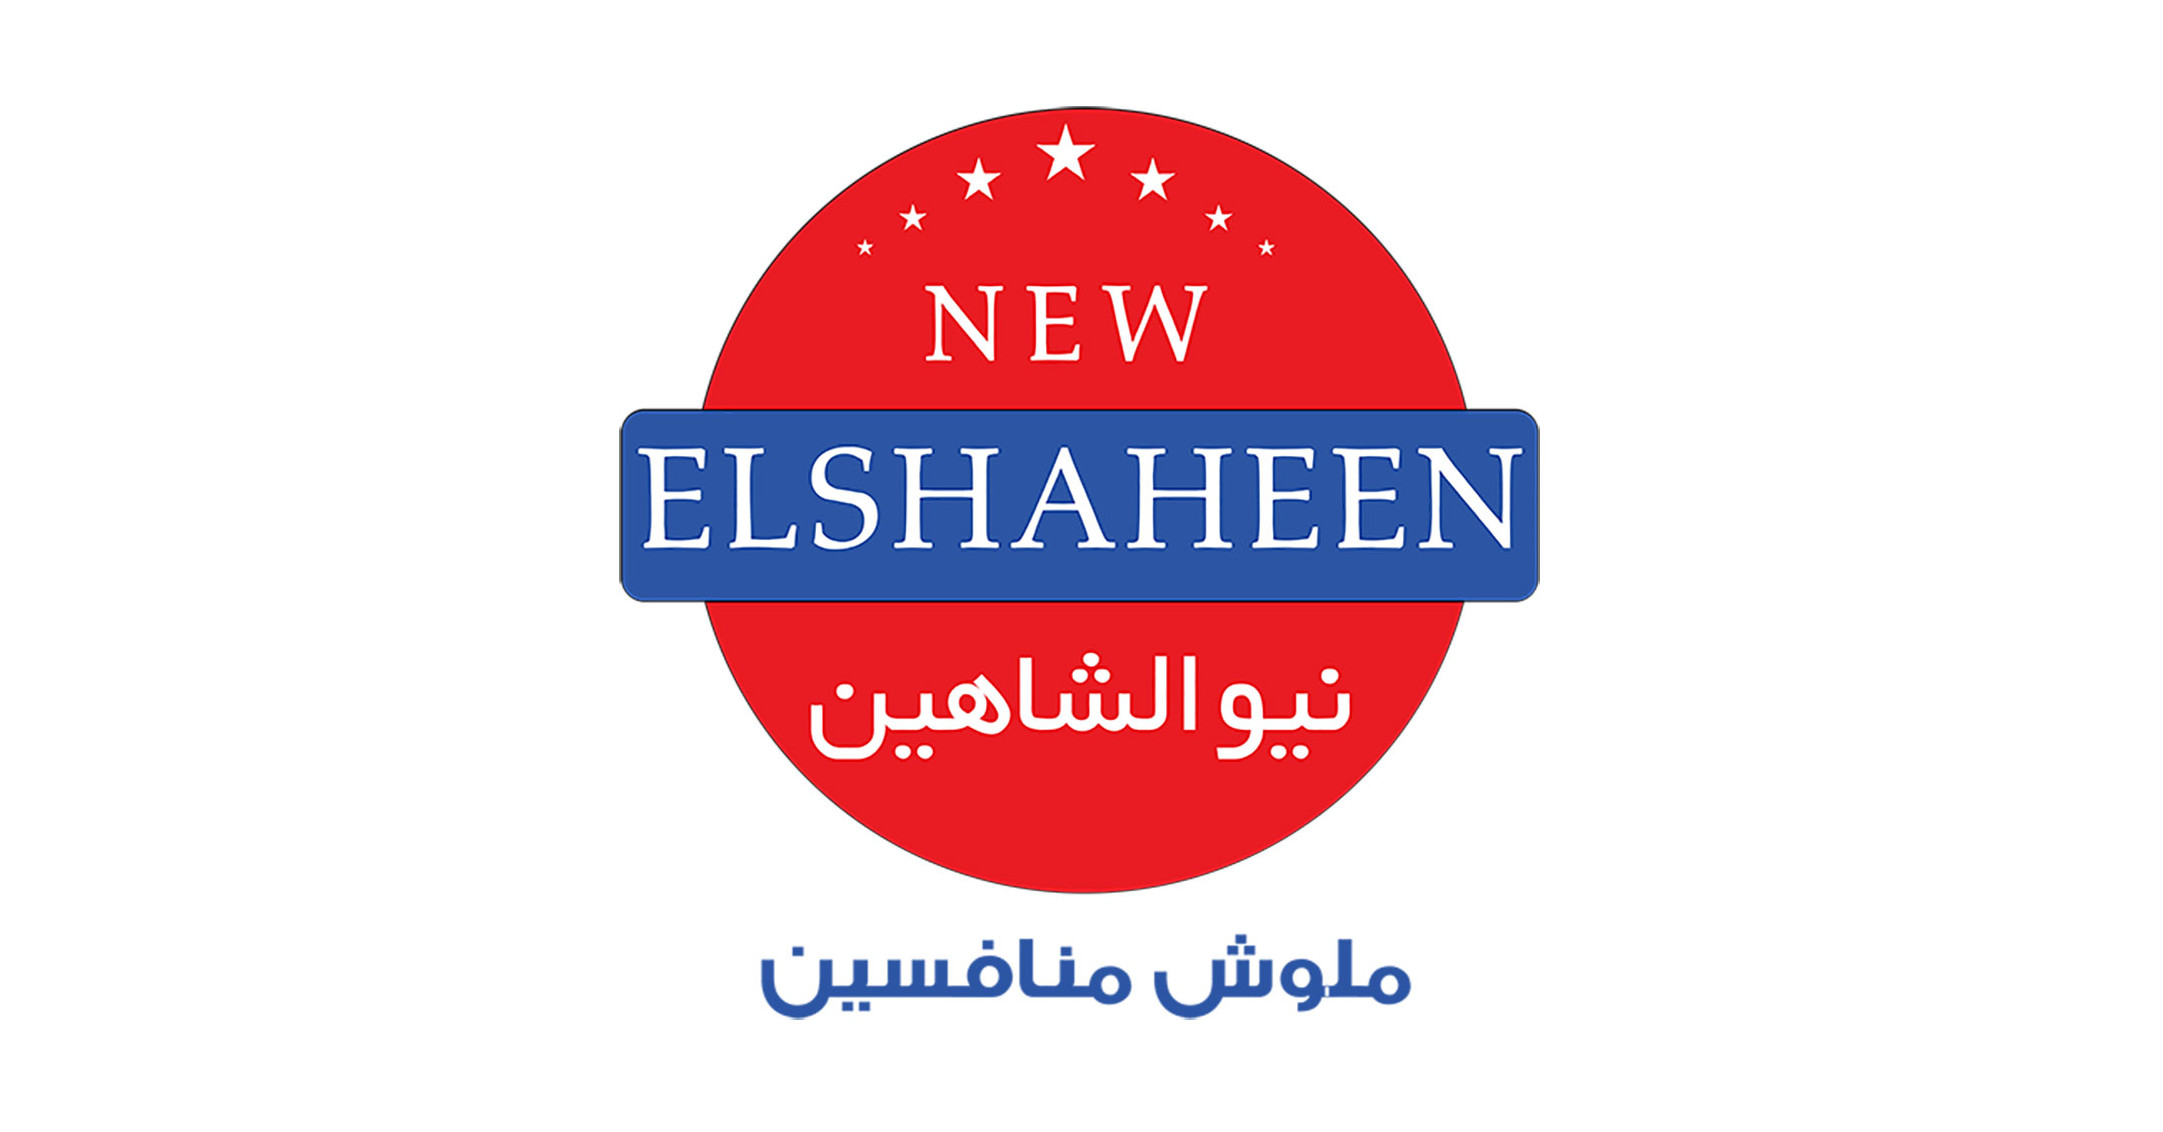 Job: STOCK CONTROL MANAGER at Elshaheen Center in Cairo, Egypt